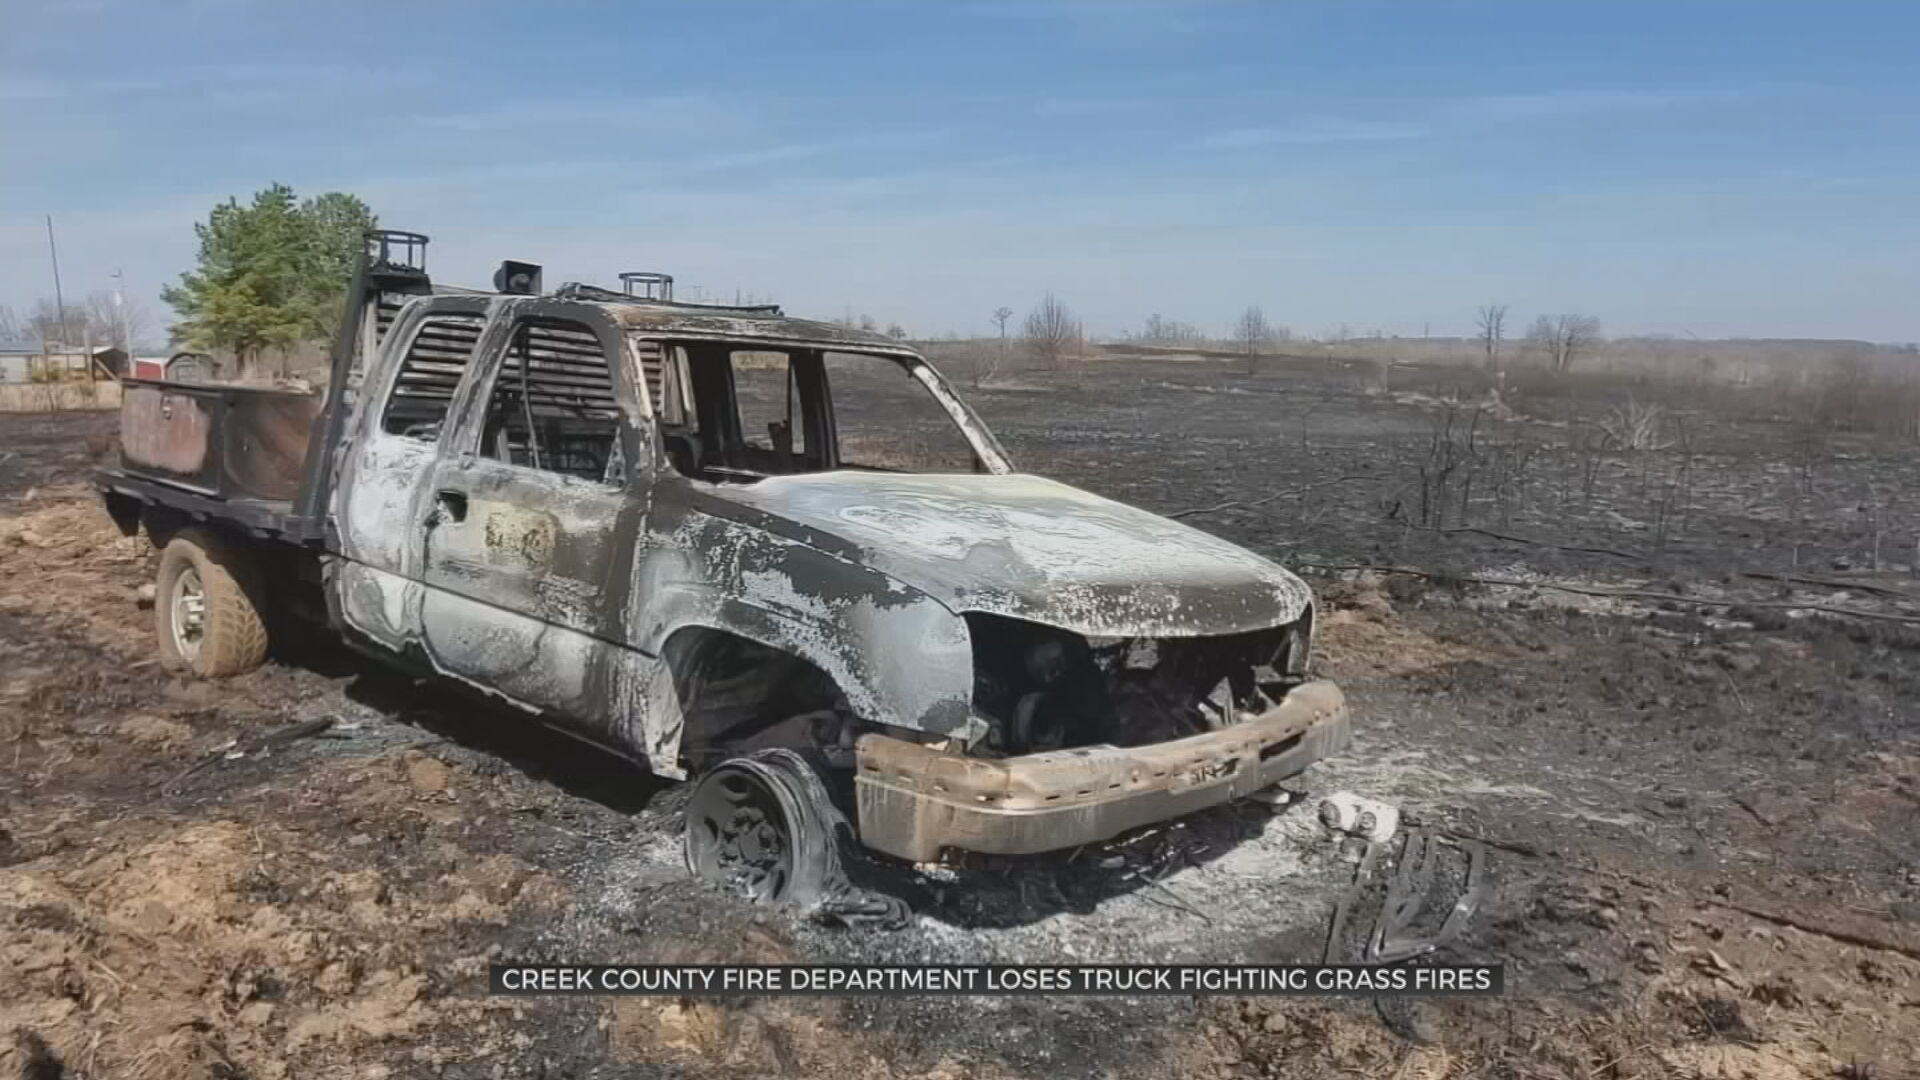 Creek County Volunteer Firefighters Lose Truck While Fighting Grass Fires